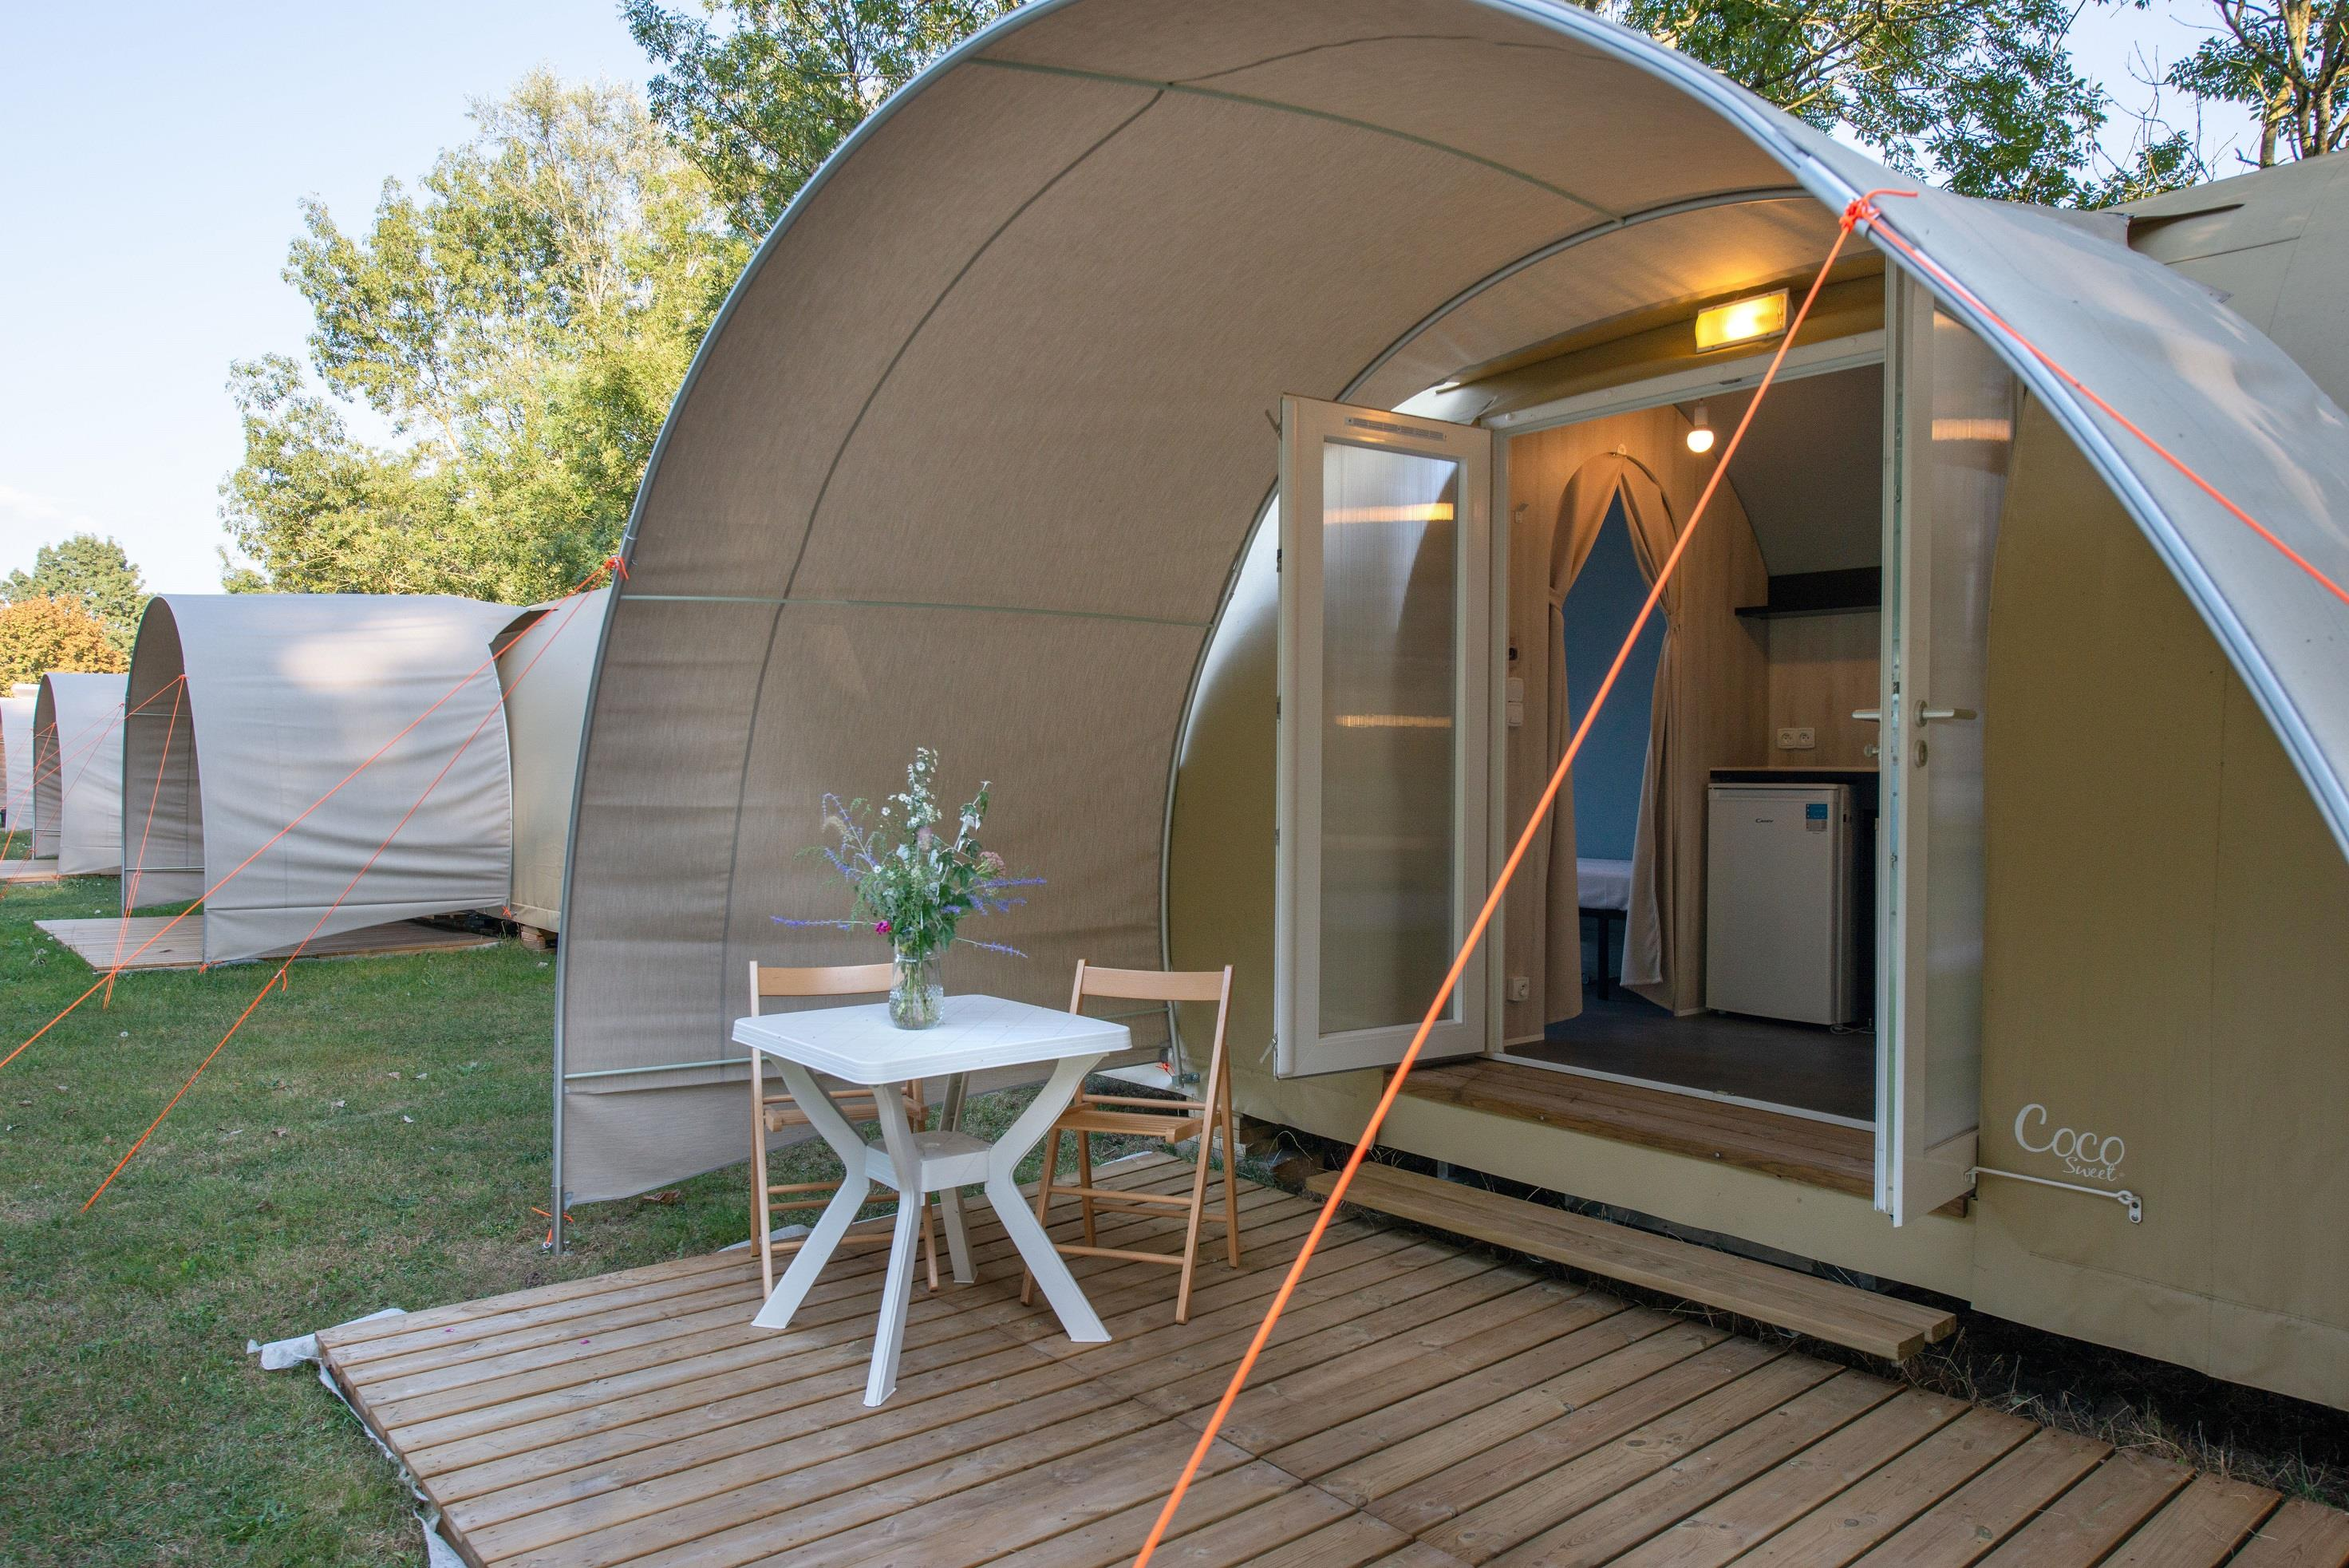 Accommodation - Tent Coco Sweet + 1 Car - Camping Aux Rives du Soleil